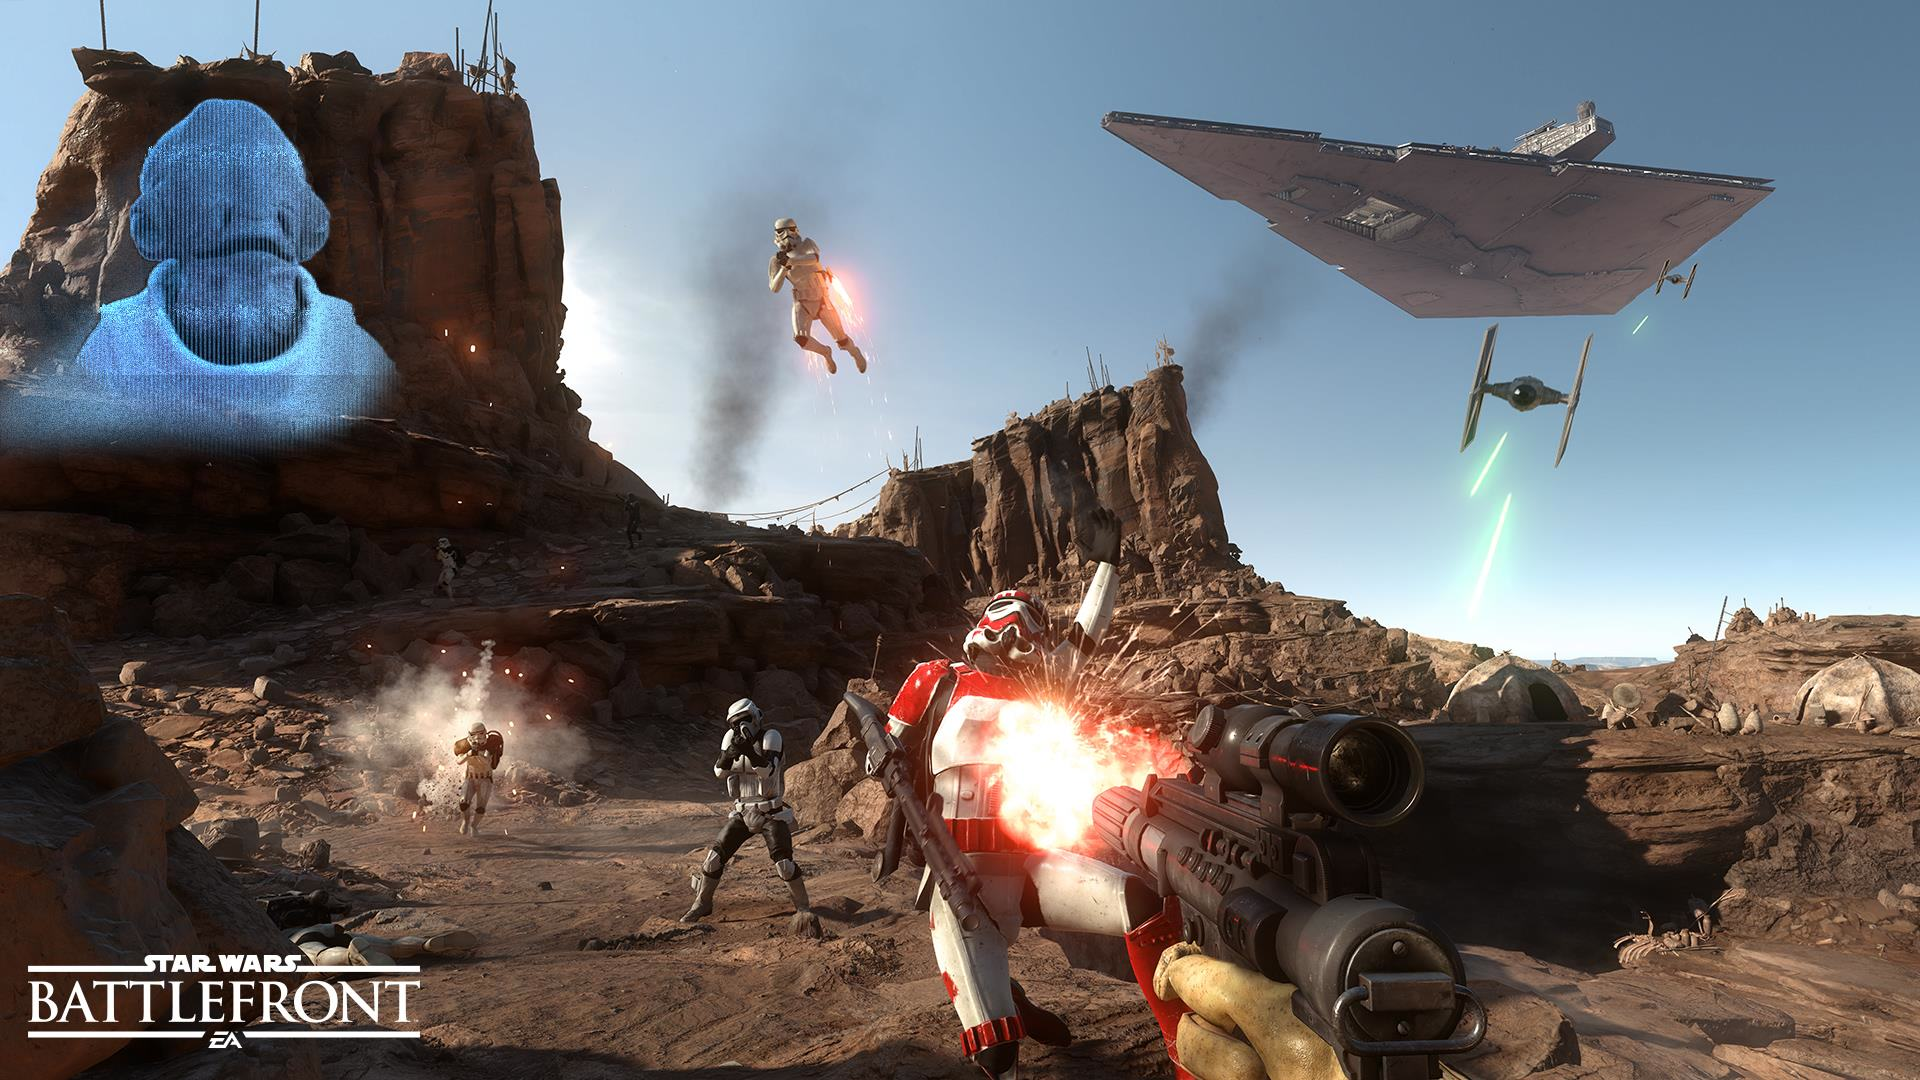 star wars battlefront e3 screen 2 EA Reveal Details Of Star Wars Battlefront Free January Update And Beyond